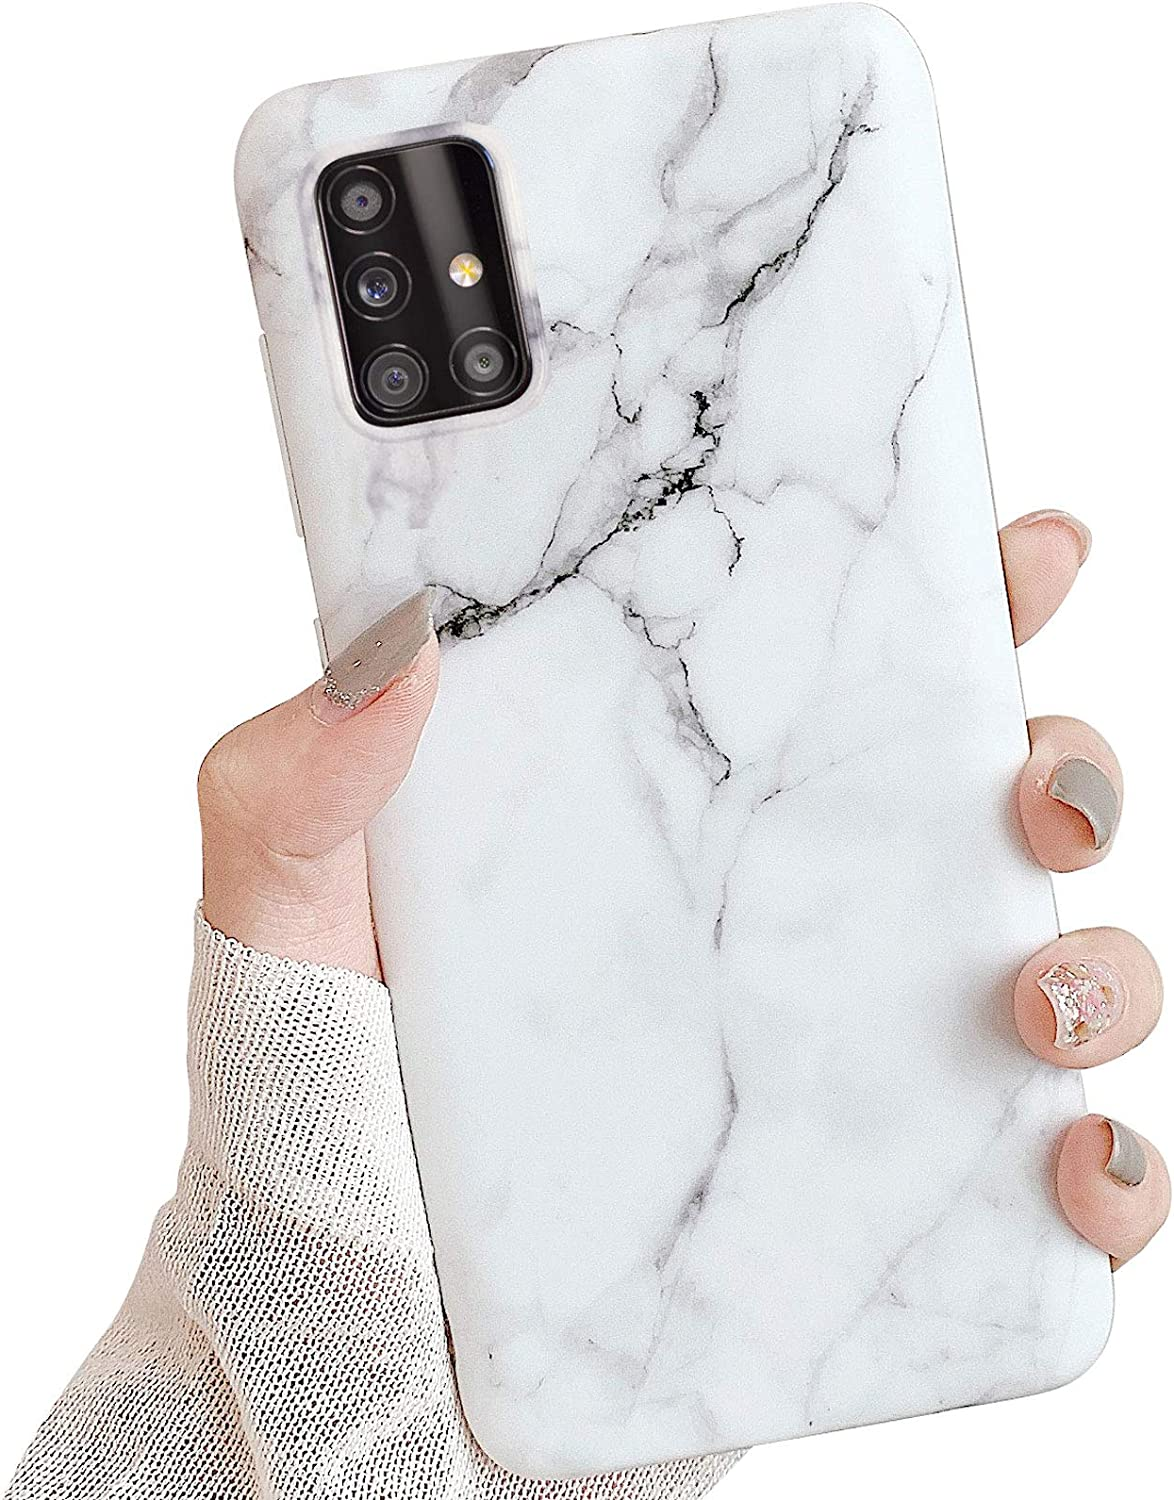 ooooops Cool Phone Case for Samsung Galaxy A51 5G [Non A51 4G], White&Black Marble Pattern Design, Slim Soft Clear Bumper Full-Body Protective Cover Case for Samsung GalaxyA51 5G 6.5'' (White Marble)